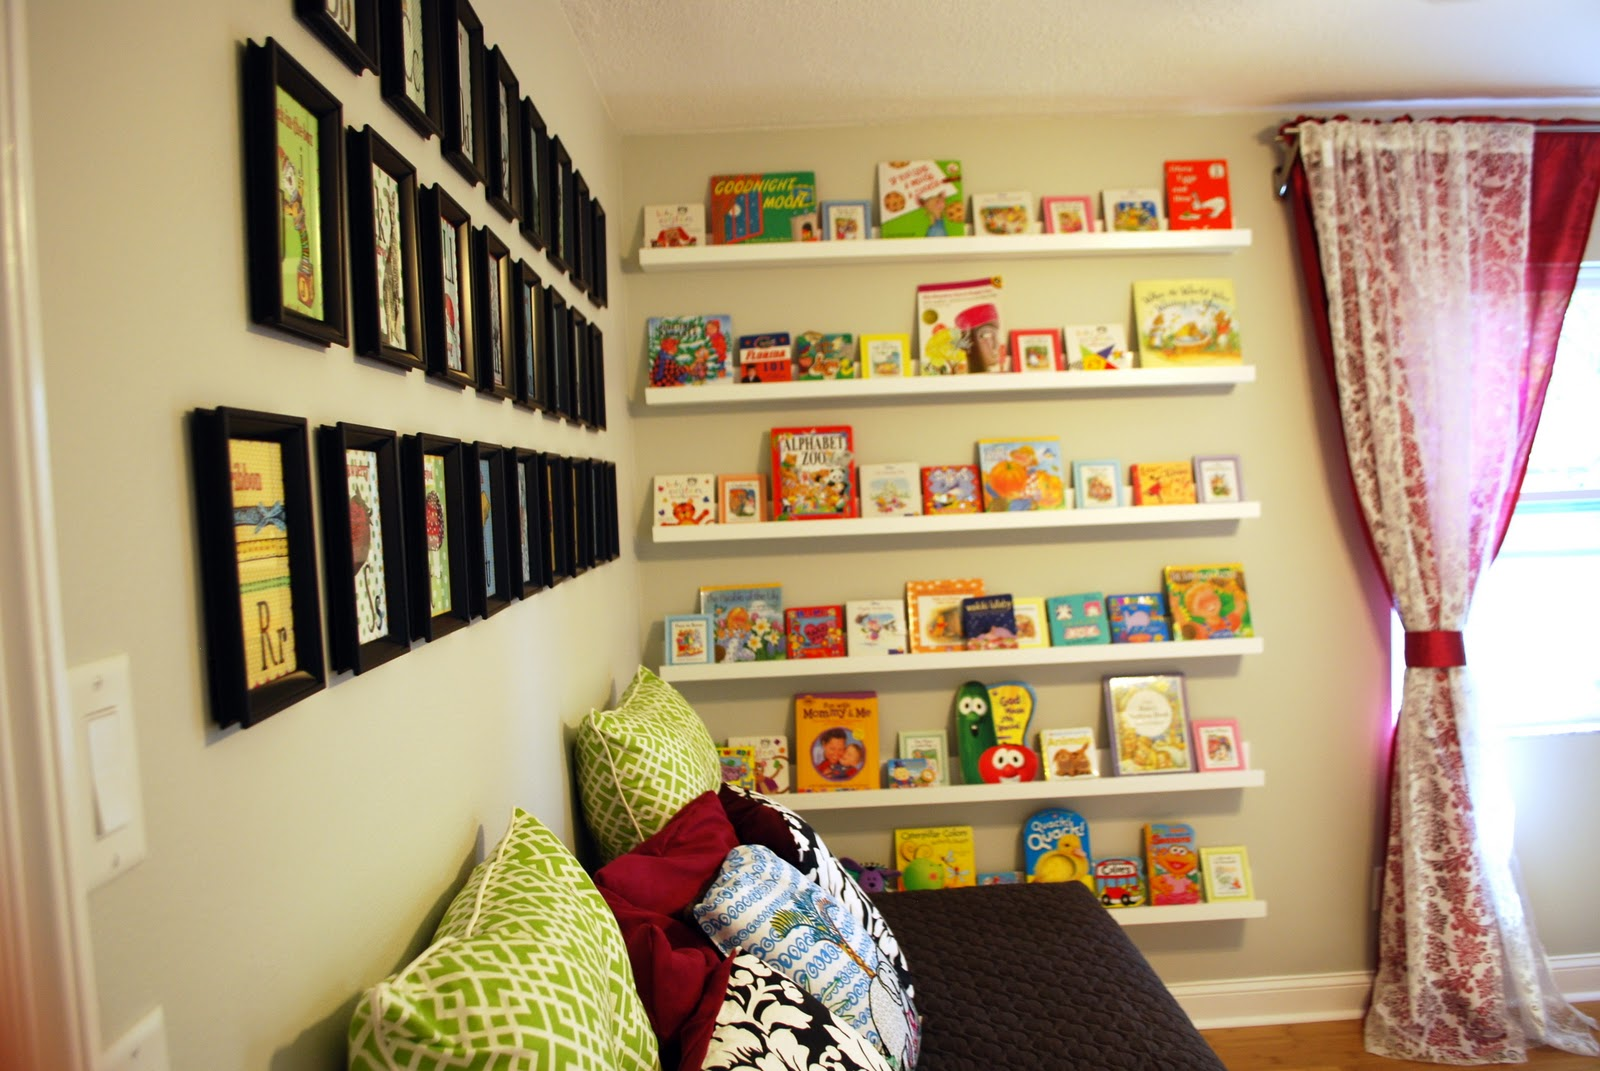 Ana White | Nursery Room Book Shelves from $10 Ledge Plan - DIY Projects